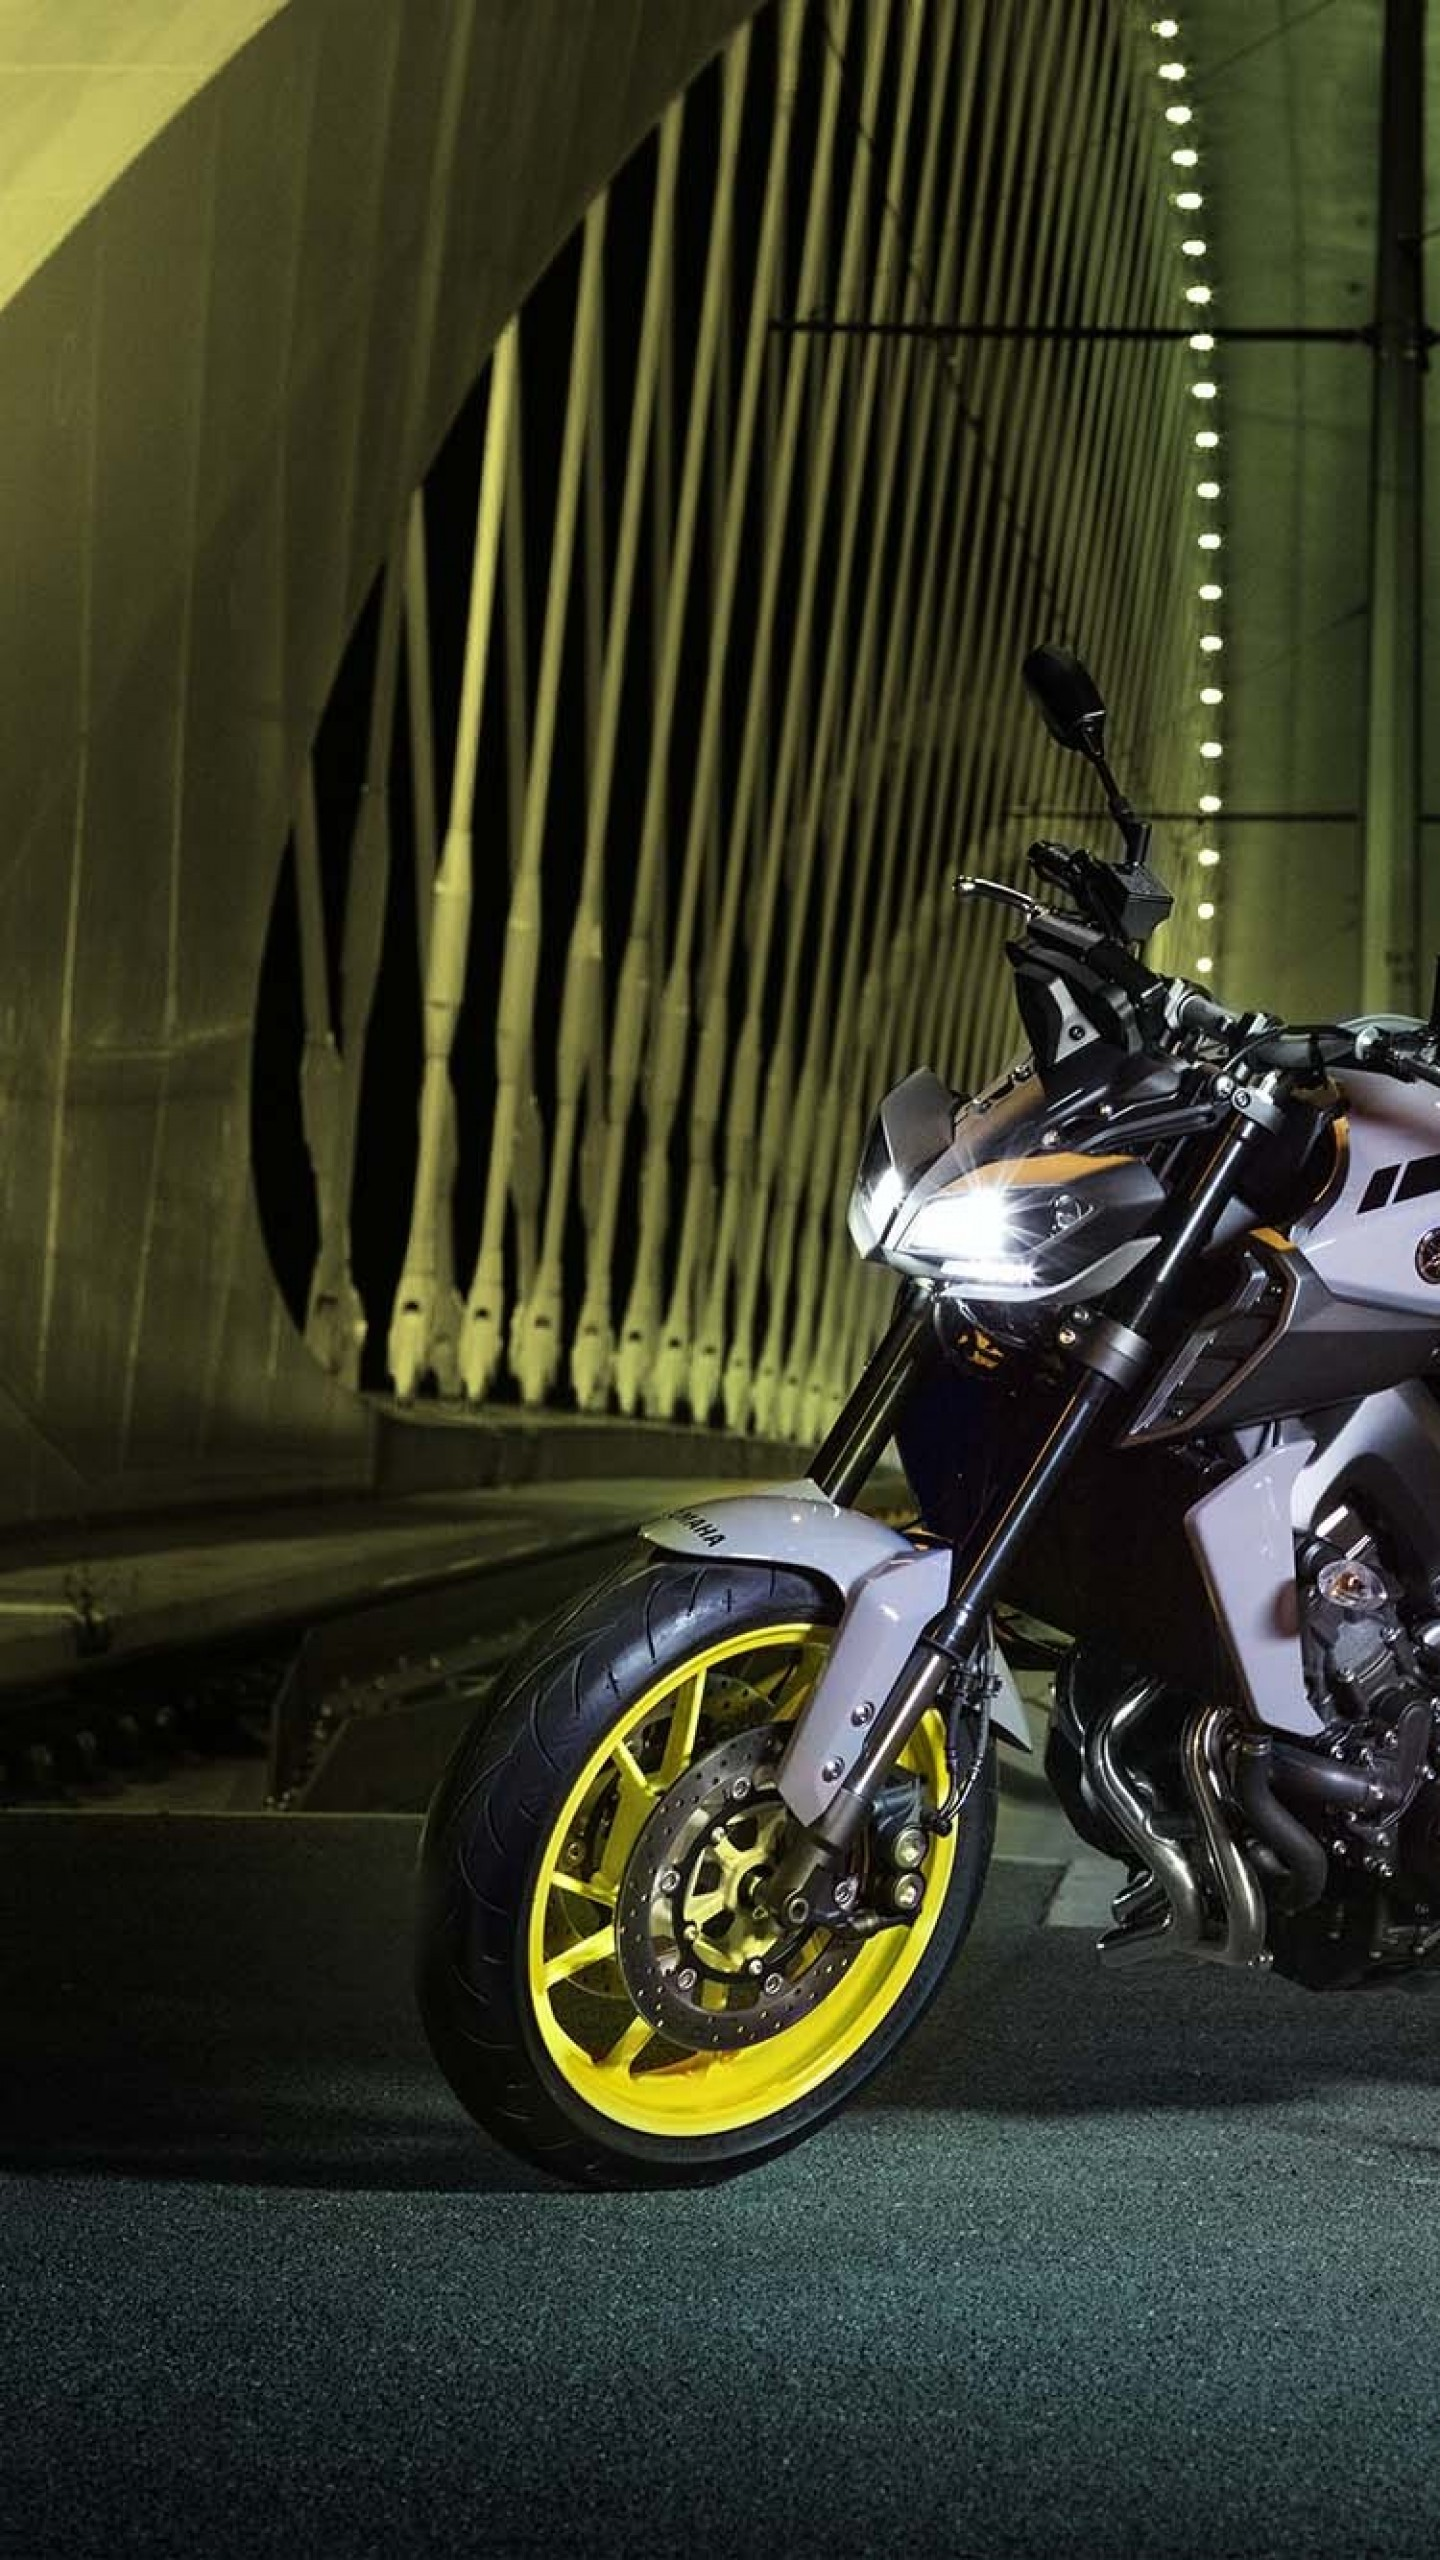 Yamaha Mt 09 Wallpapers Posted By Ethan Sellers